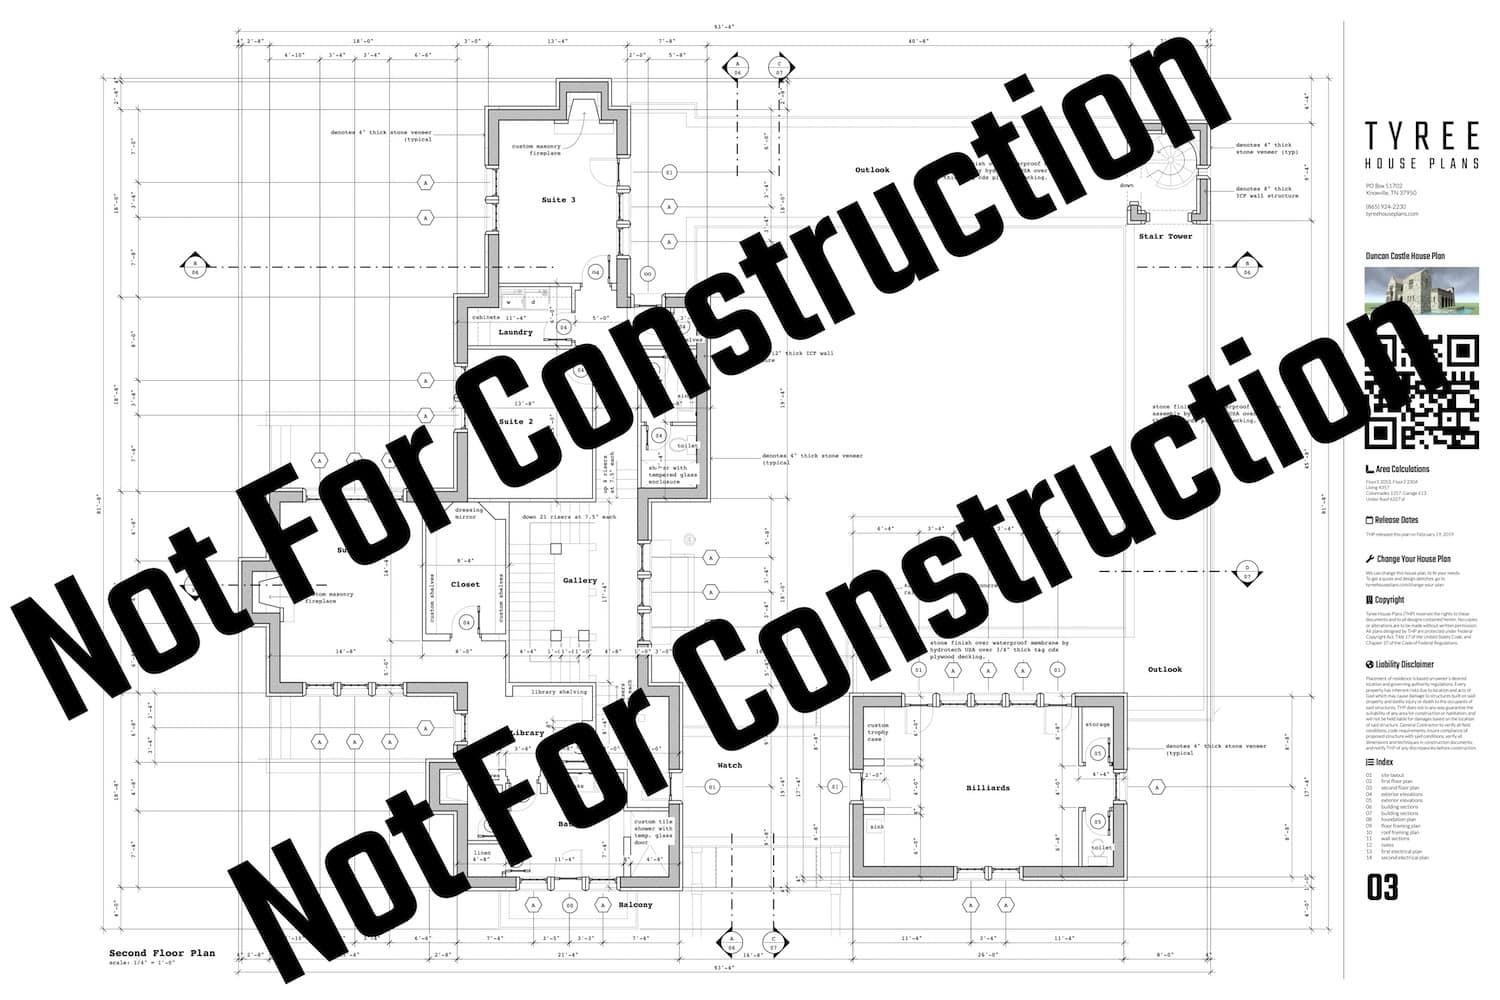 Support by Tyree House Plans